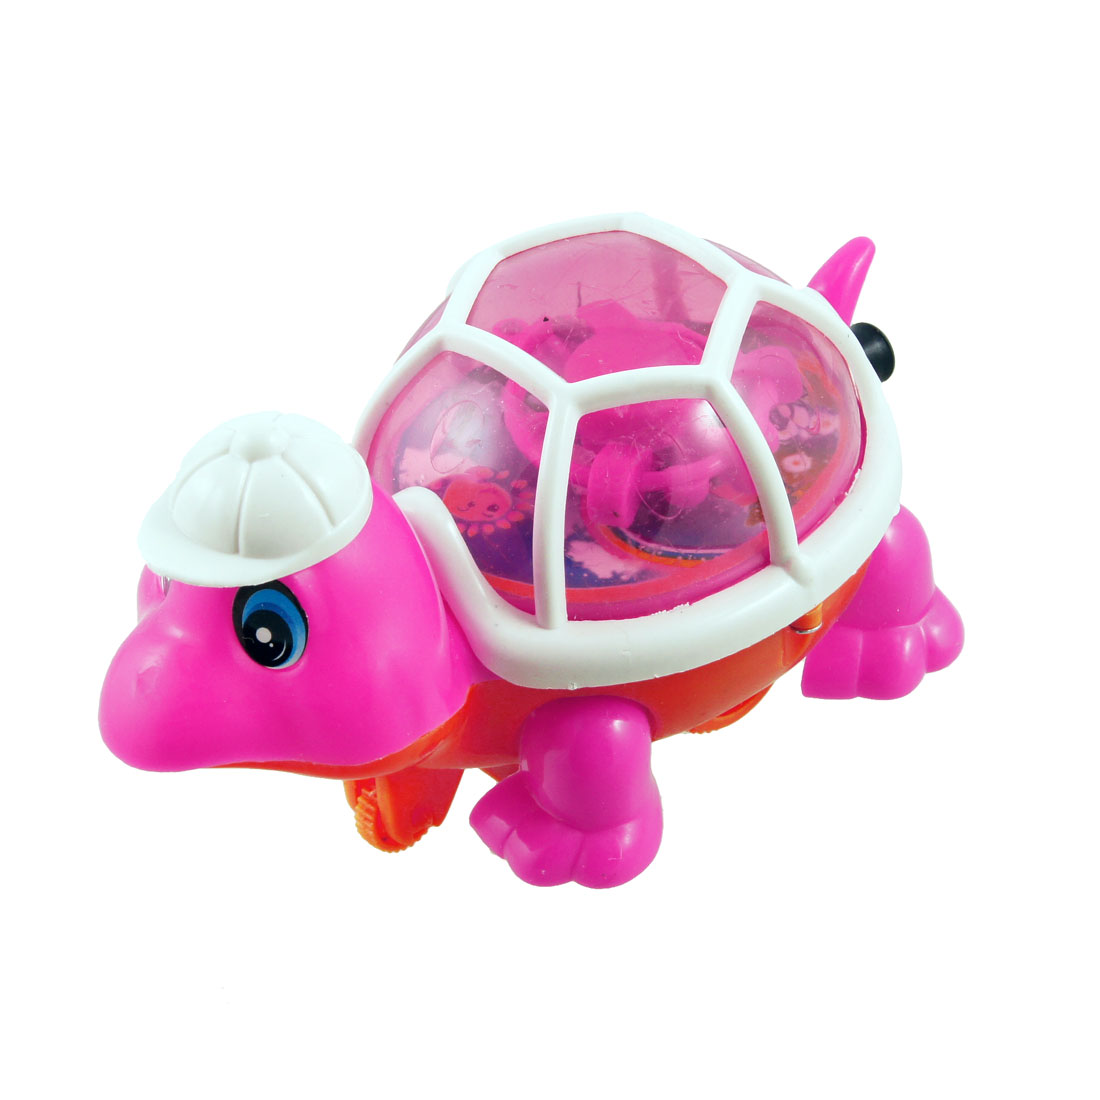 Pull Line Drive Plastic LED Light Turtle Animal Toy Magenta White for Kids